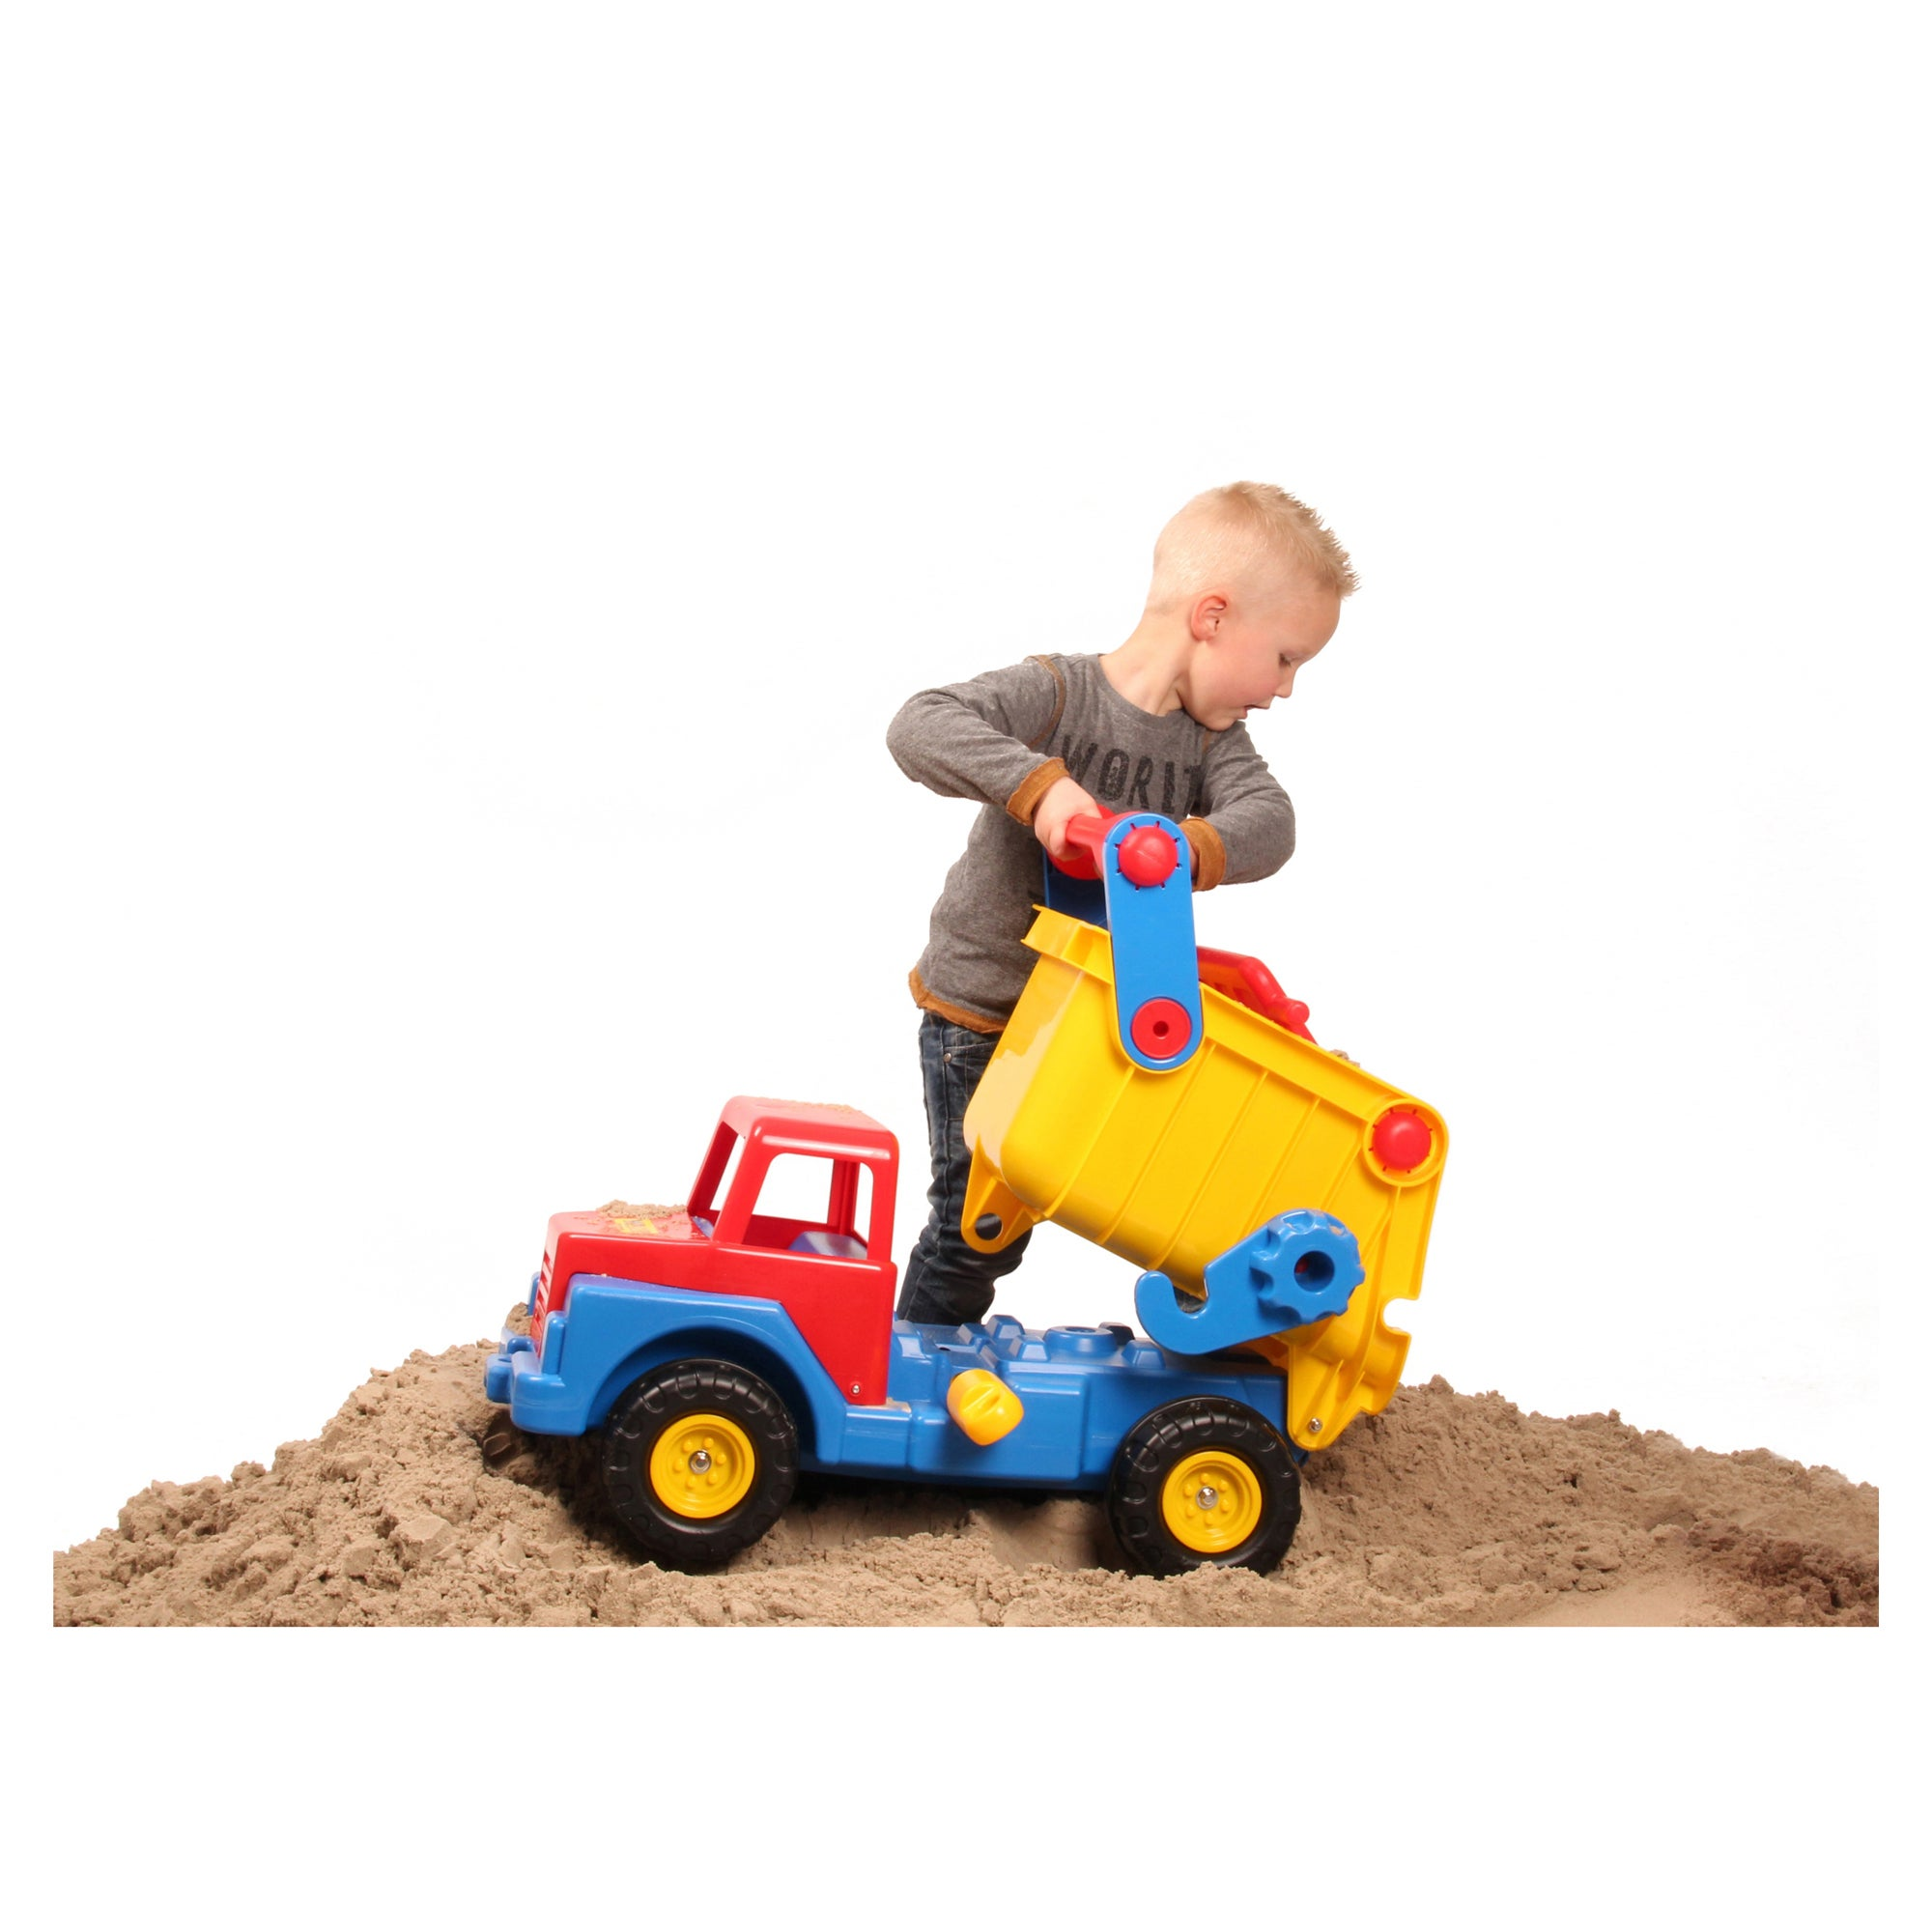 1189d460406 Shop Wader Quality Toys Giant Dump Truck - Free Shipping Today - Overstock  - 16804423